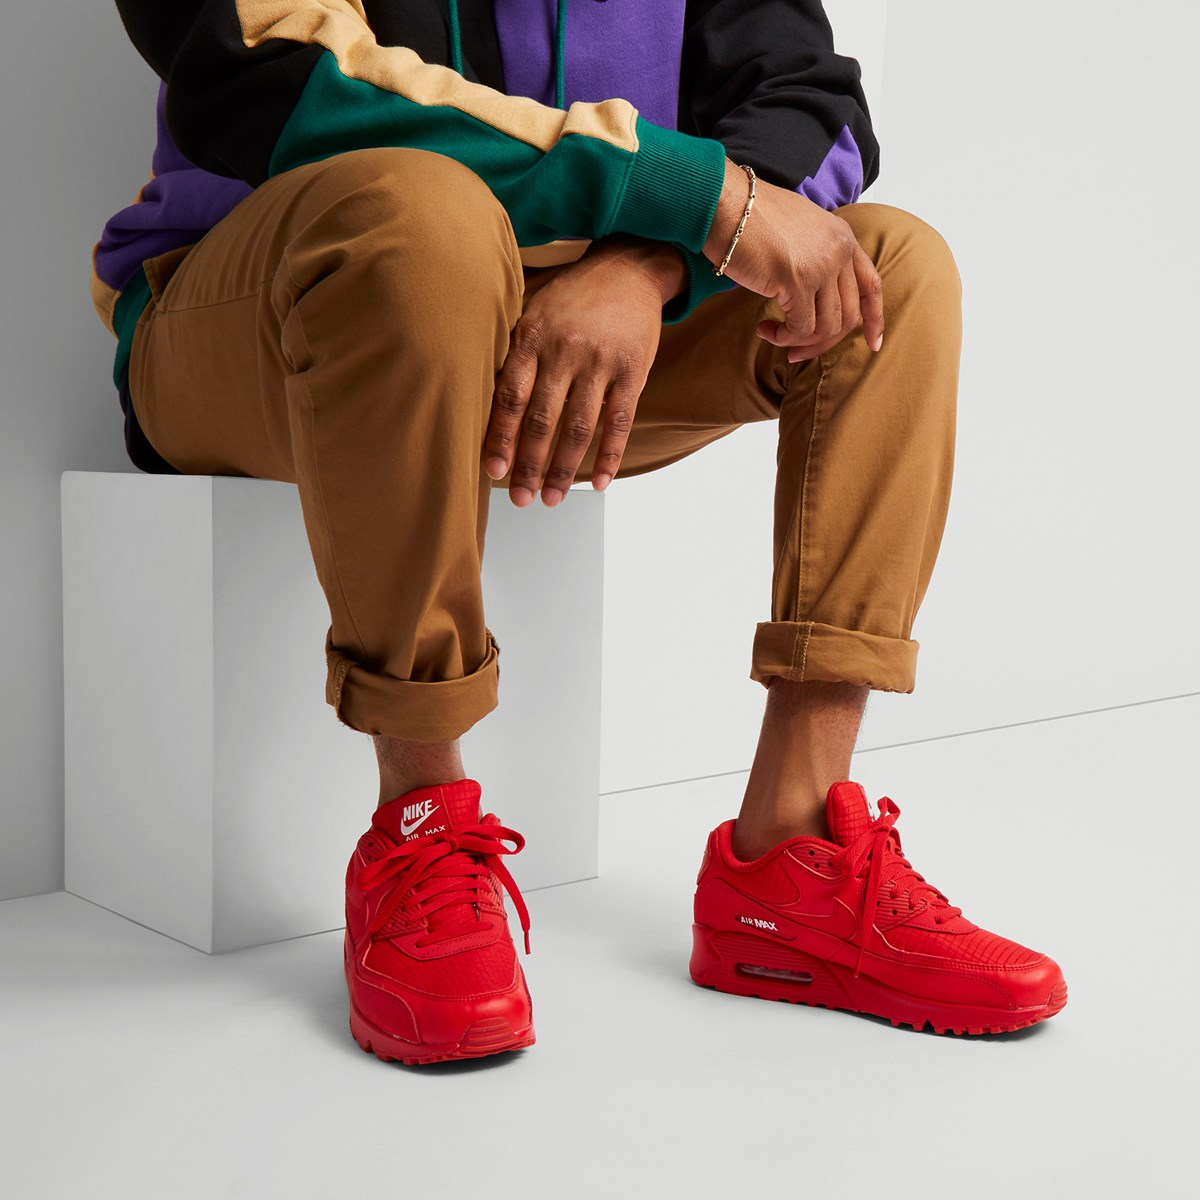 Baskets Air Max 90 Essential rouges pour hommes